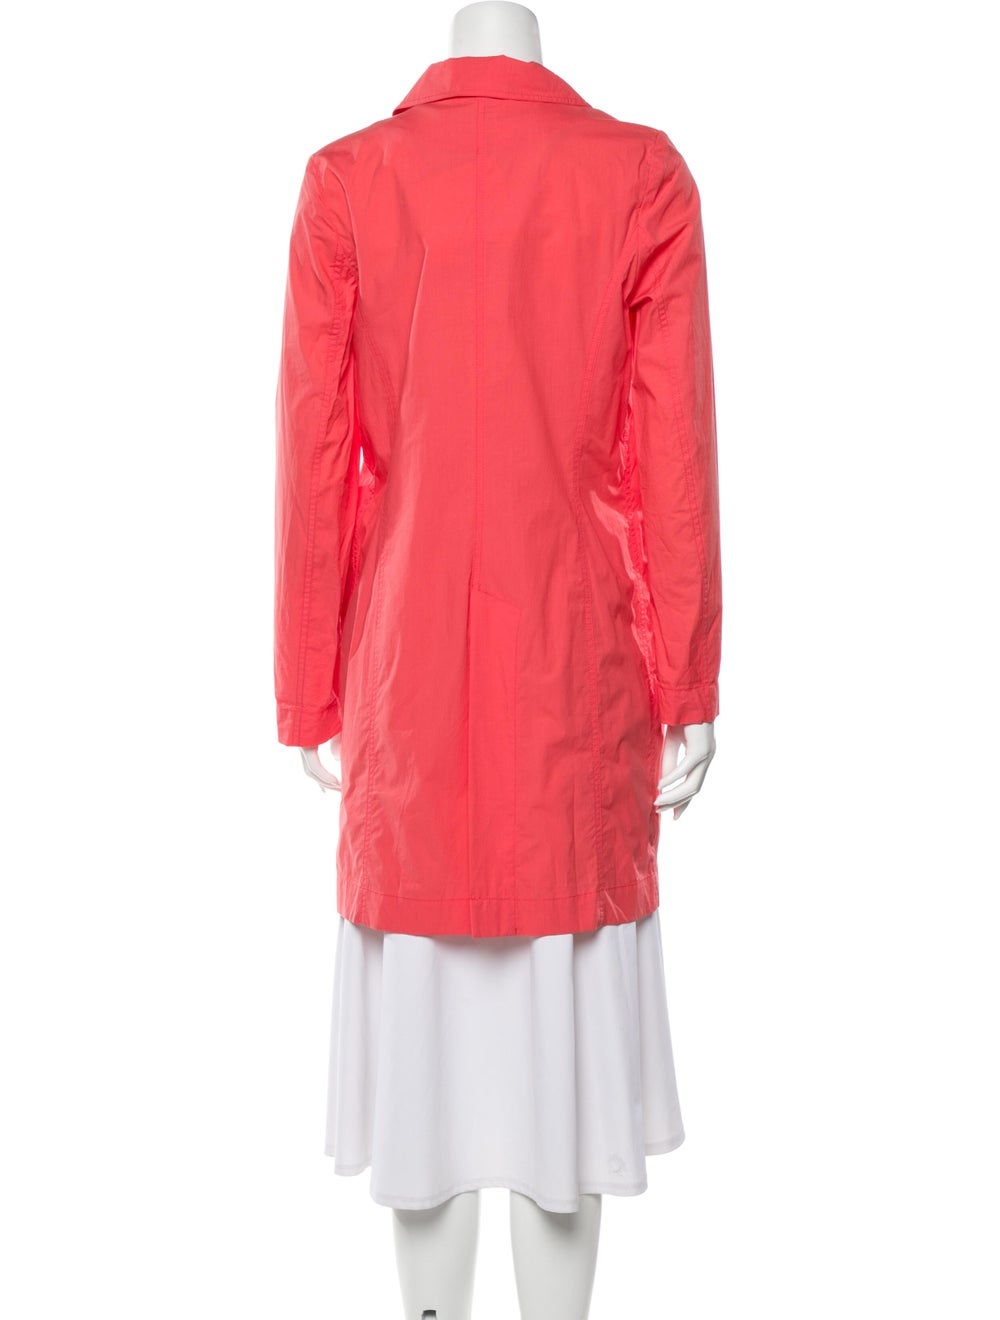 Closed Trench Coat Pink - image 3